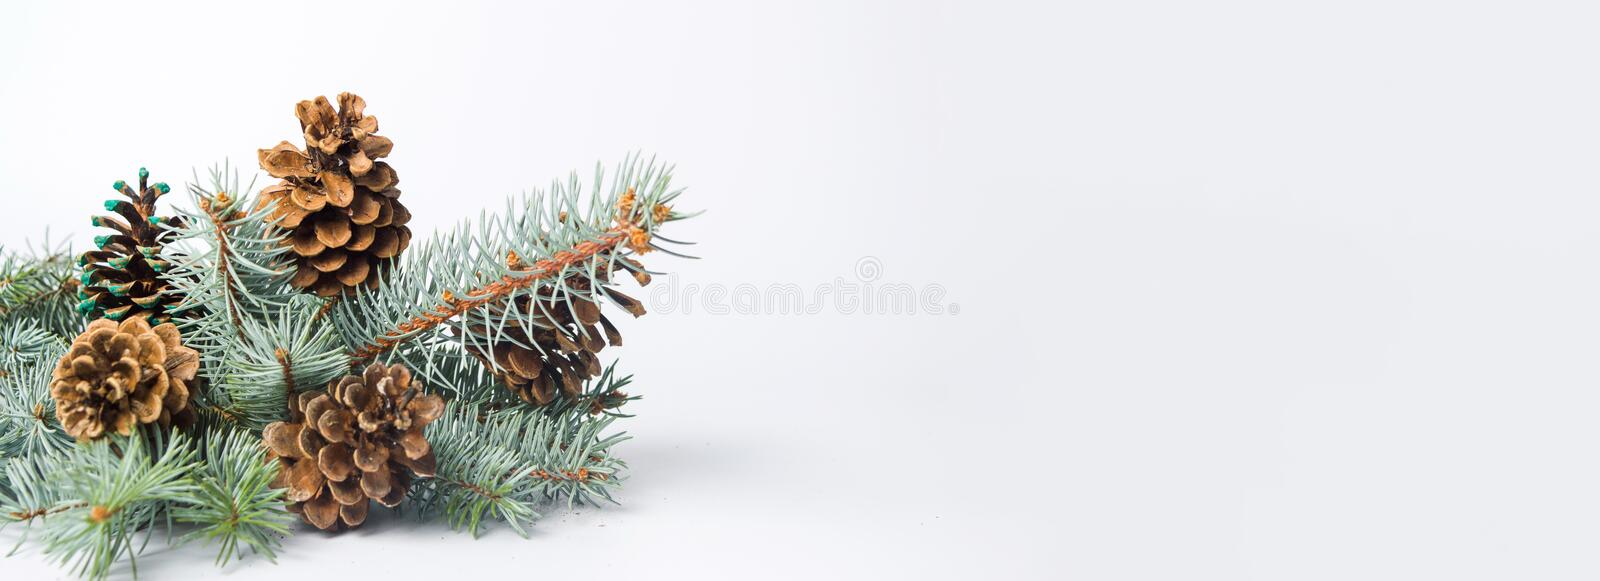 Pine cones on a branch royalty free stock image